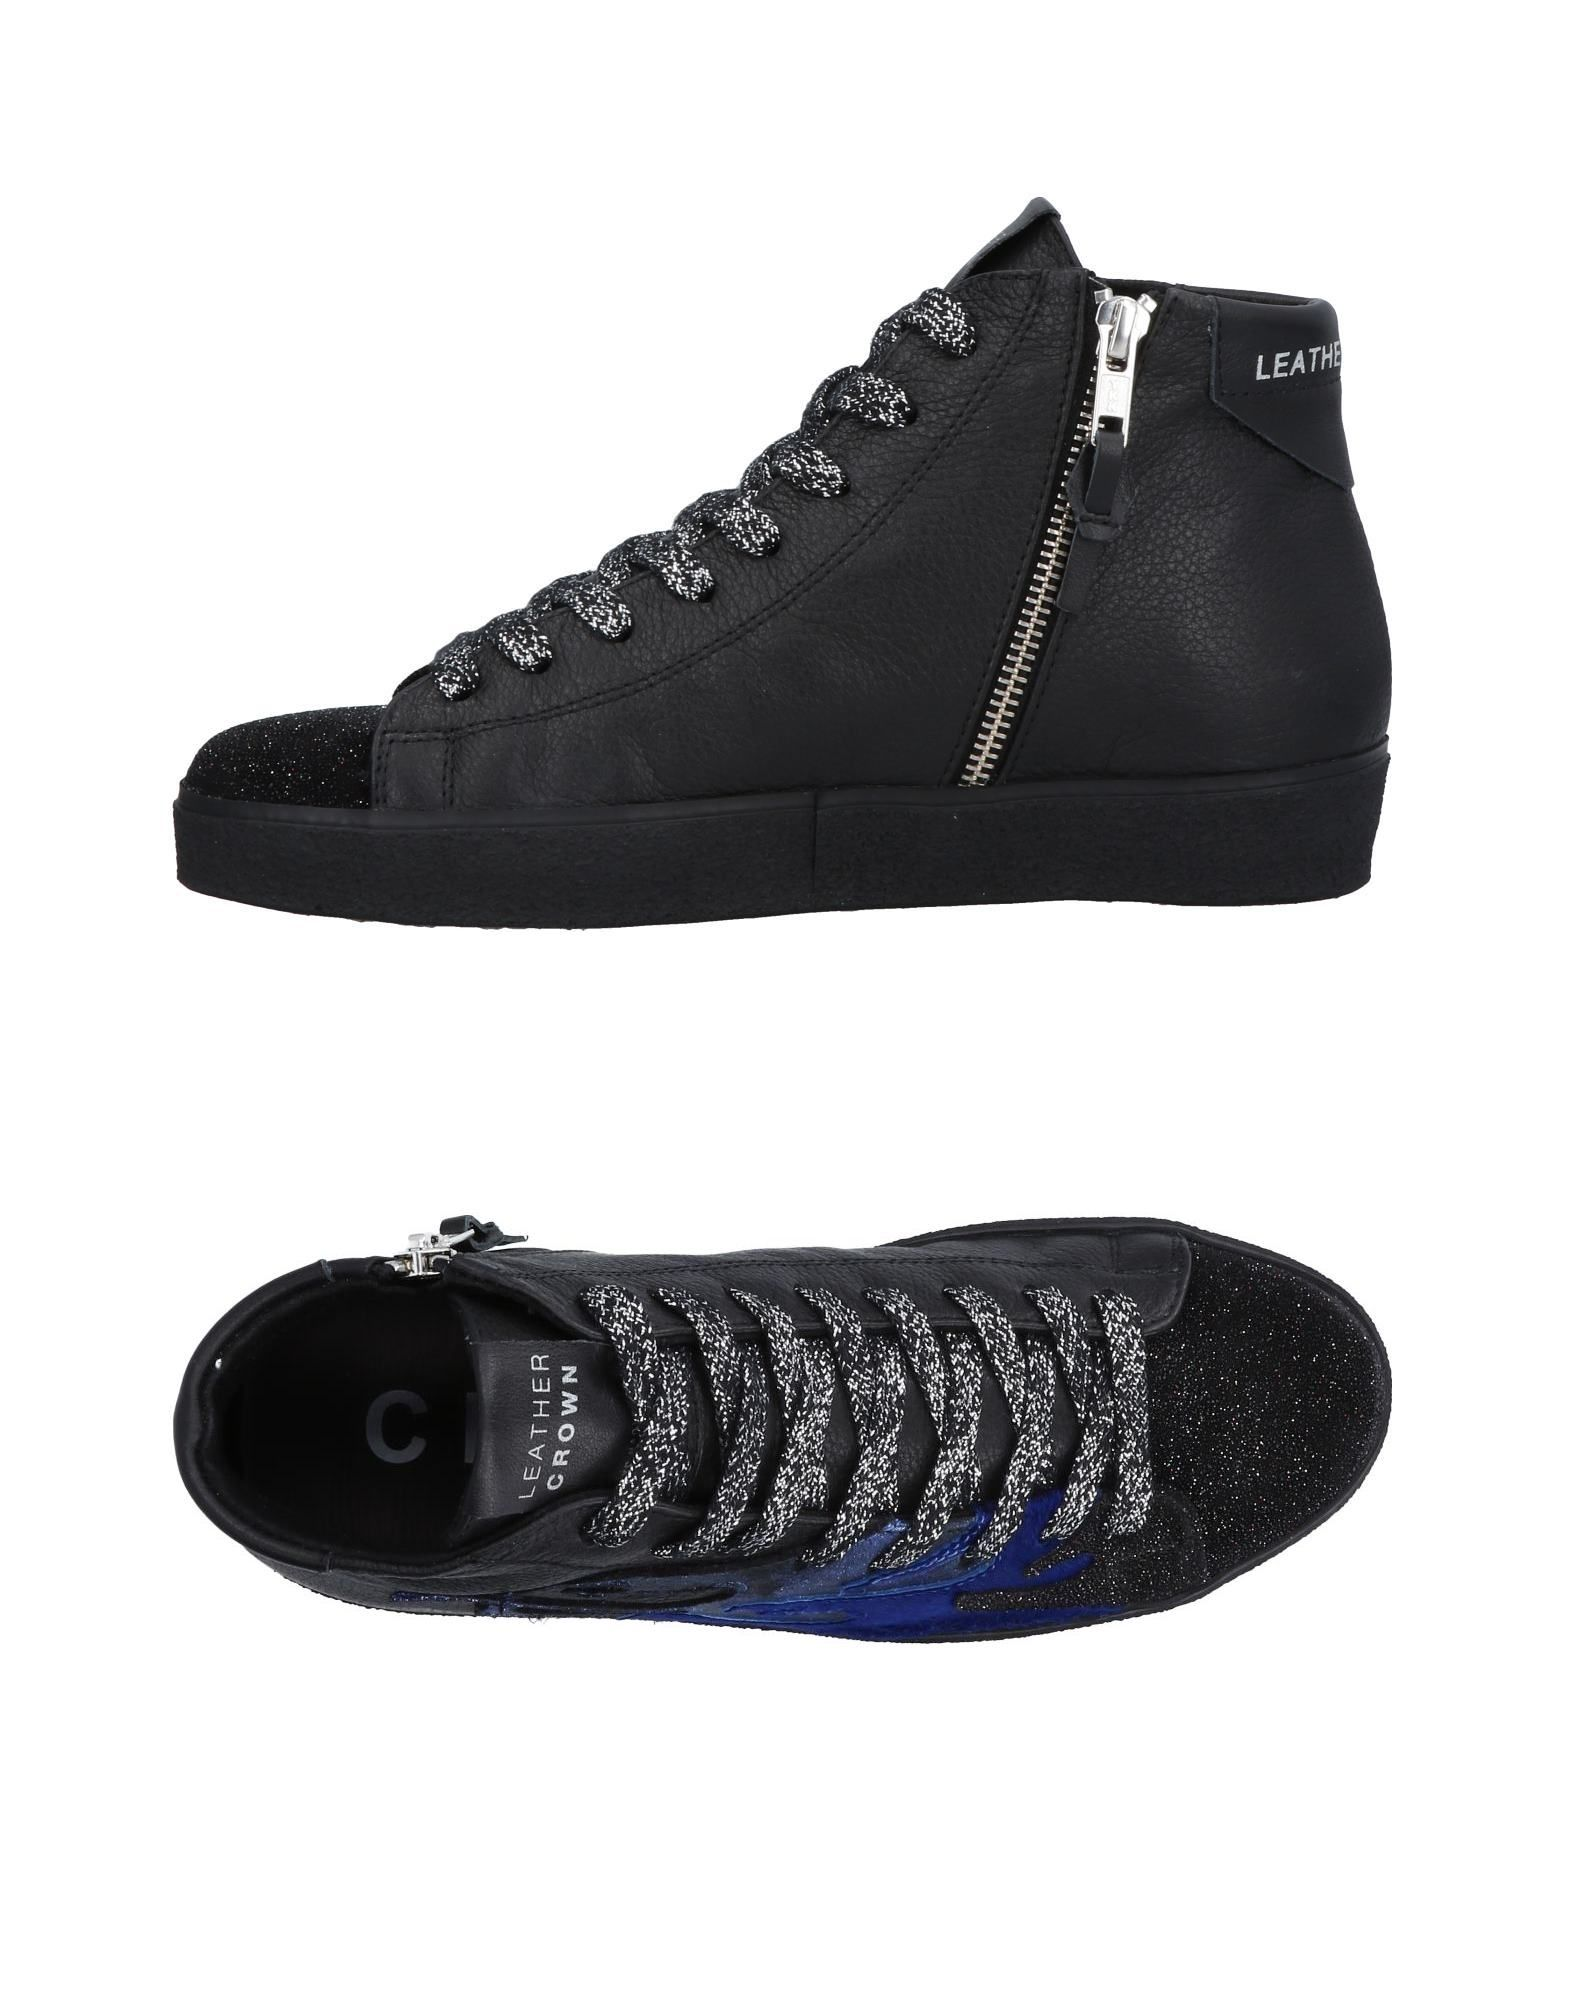 su Acquista Sneakers online Leather Crown Donna q0w0xaO1g